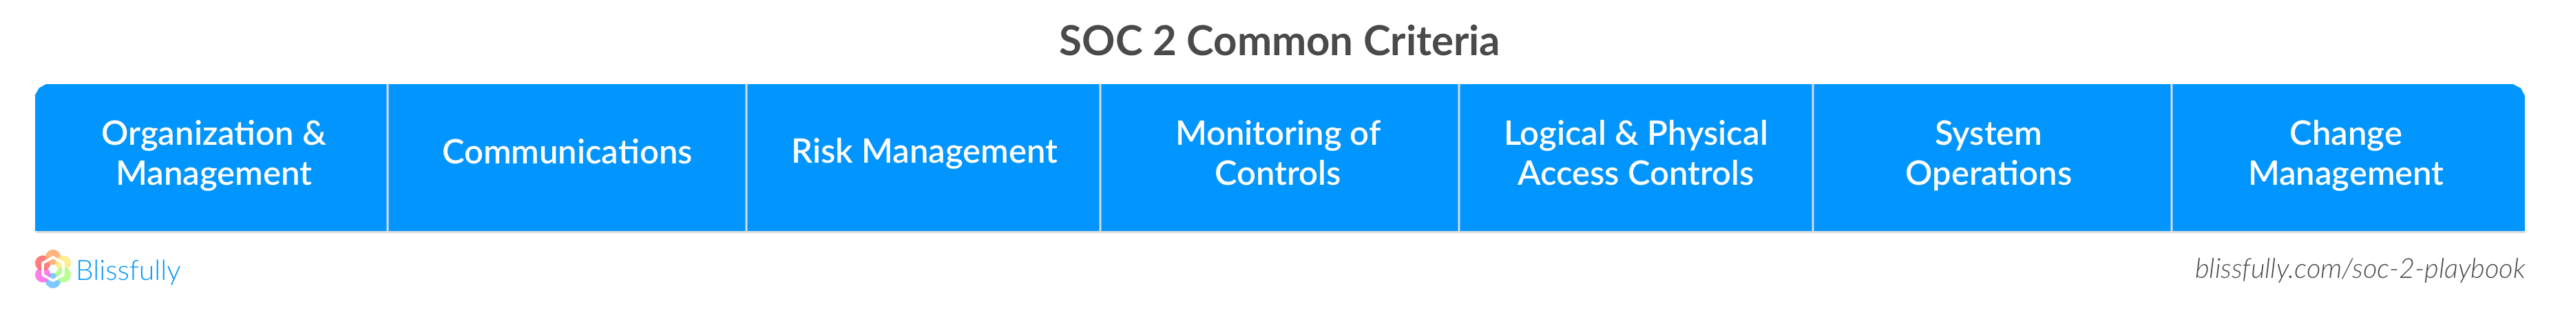 SOC 2 Common Criteria